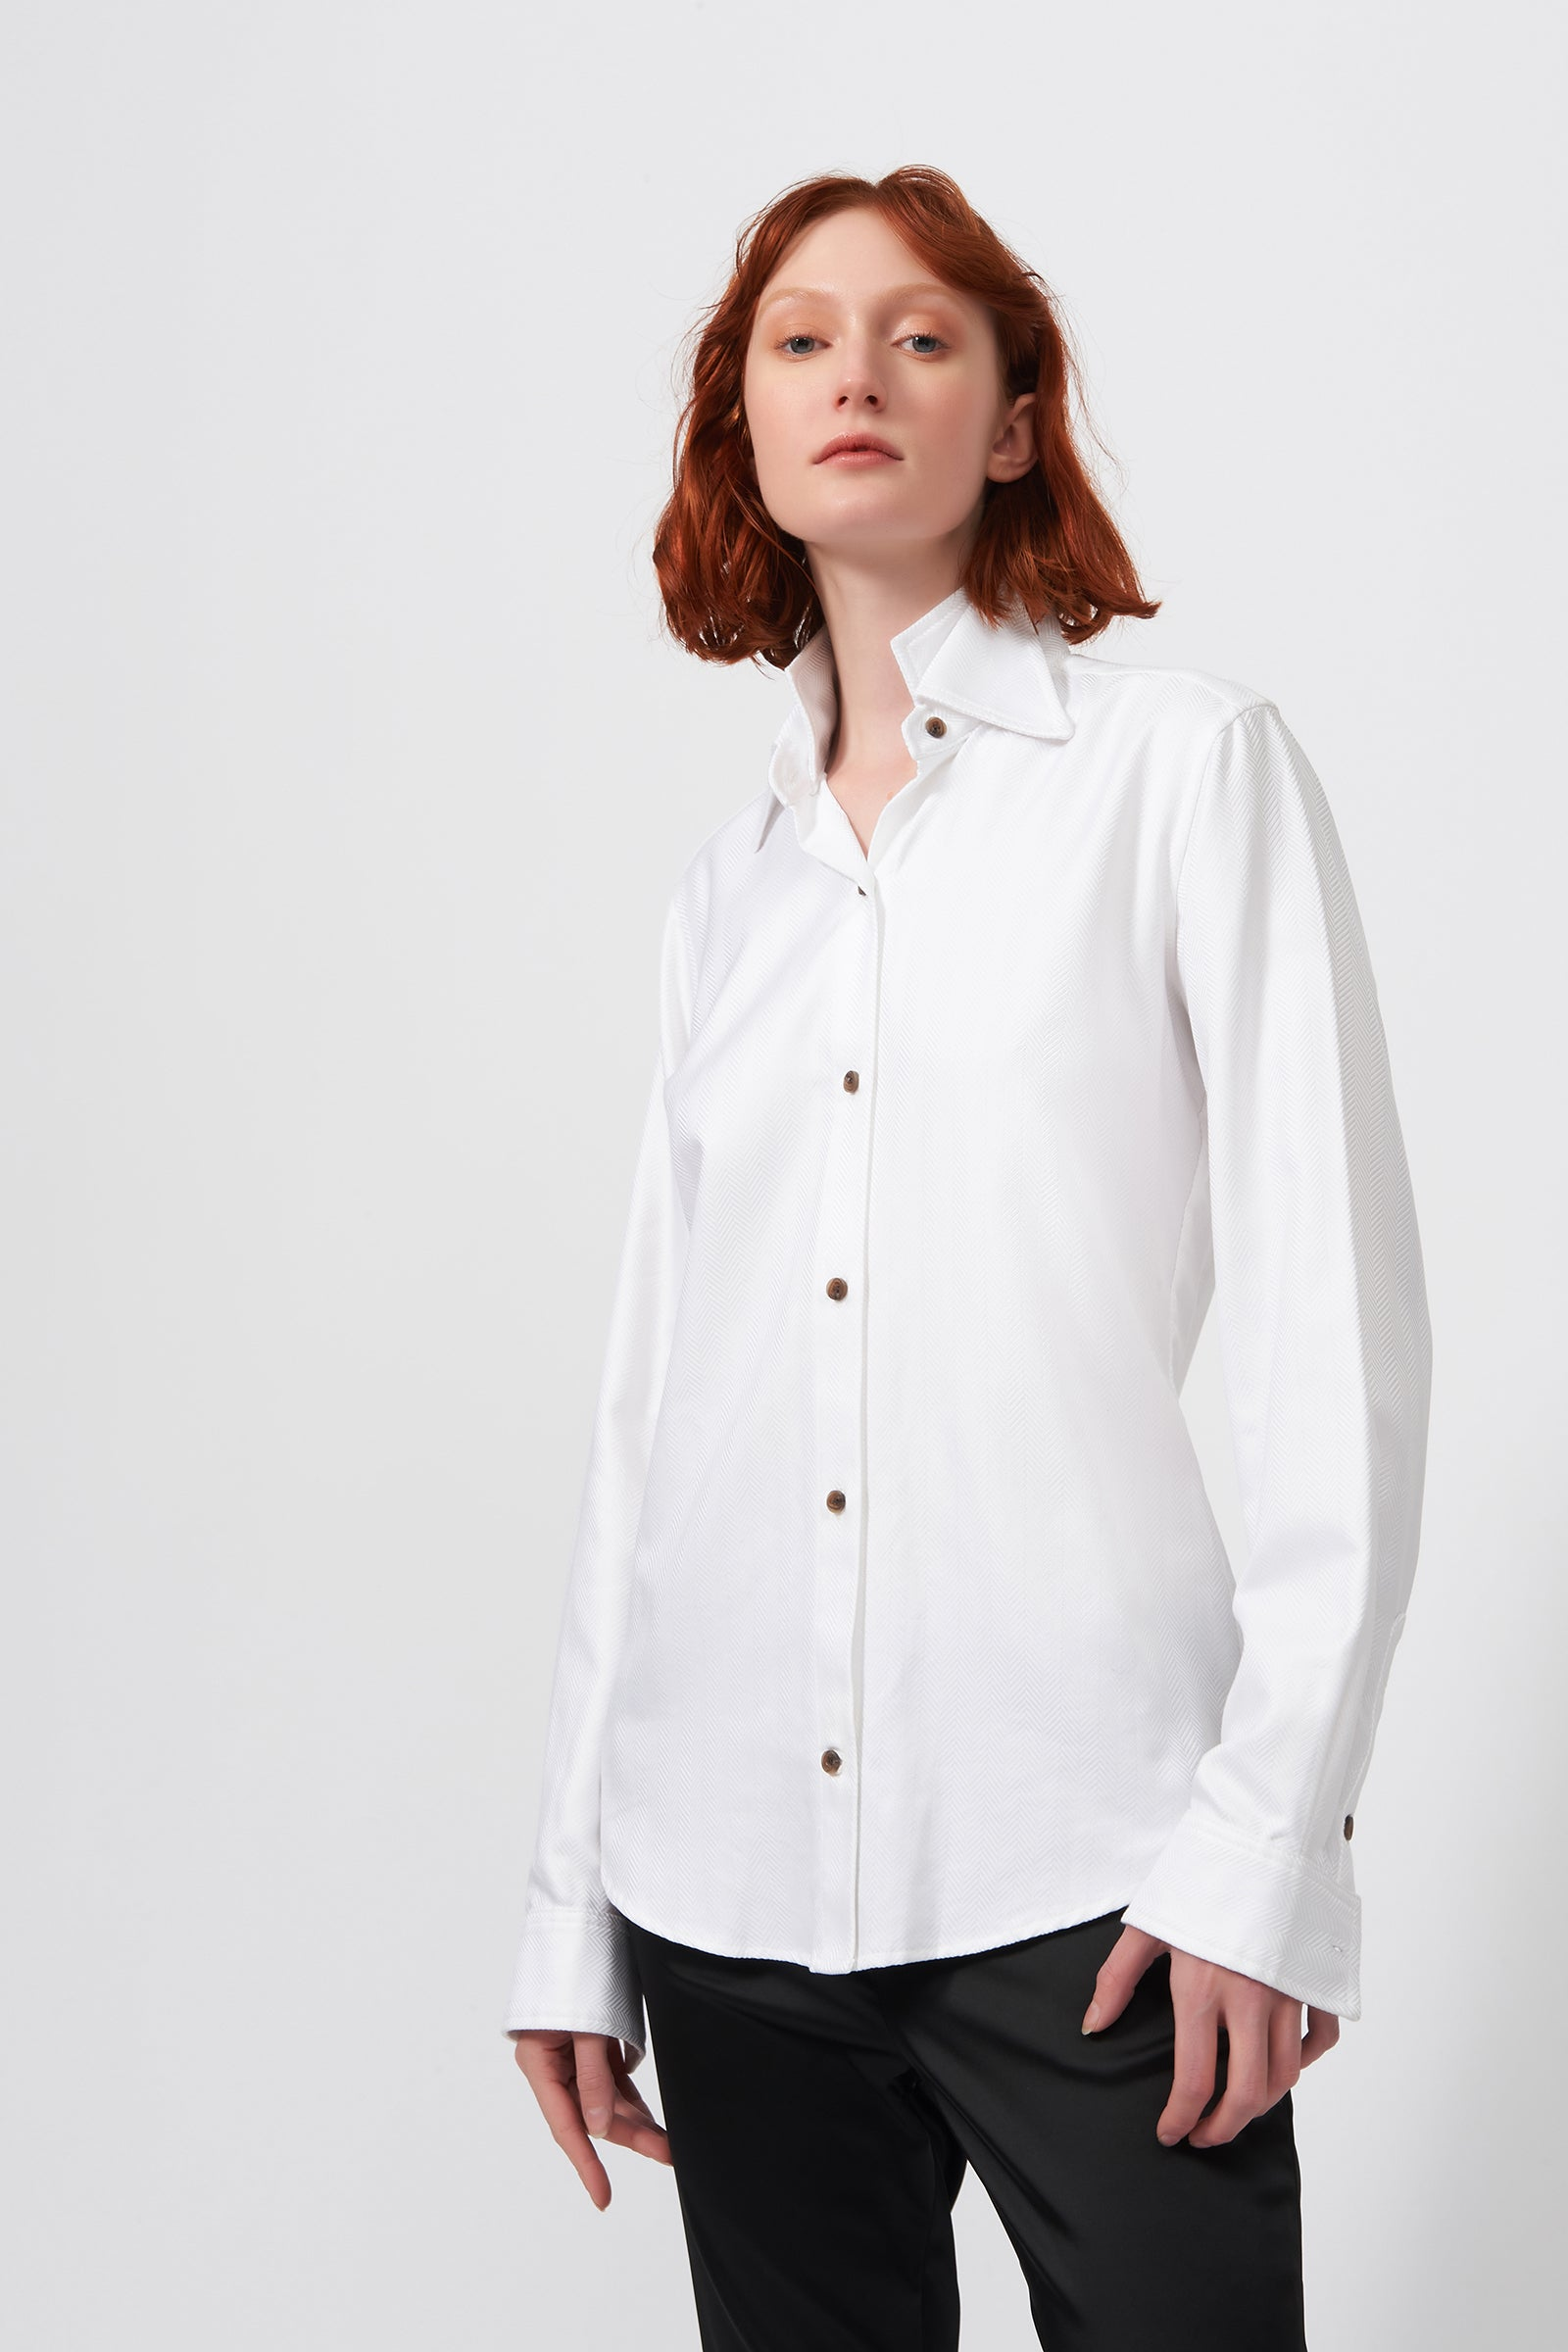 Kal Rieman Double Collar Shirt in White Herringbone on Model Front View